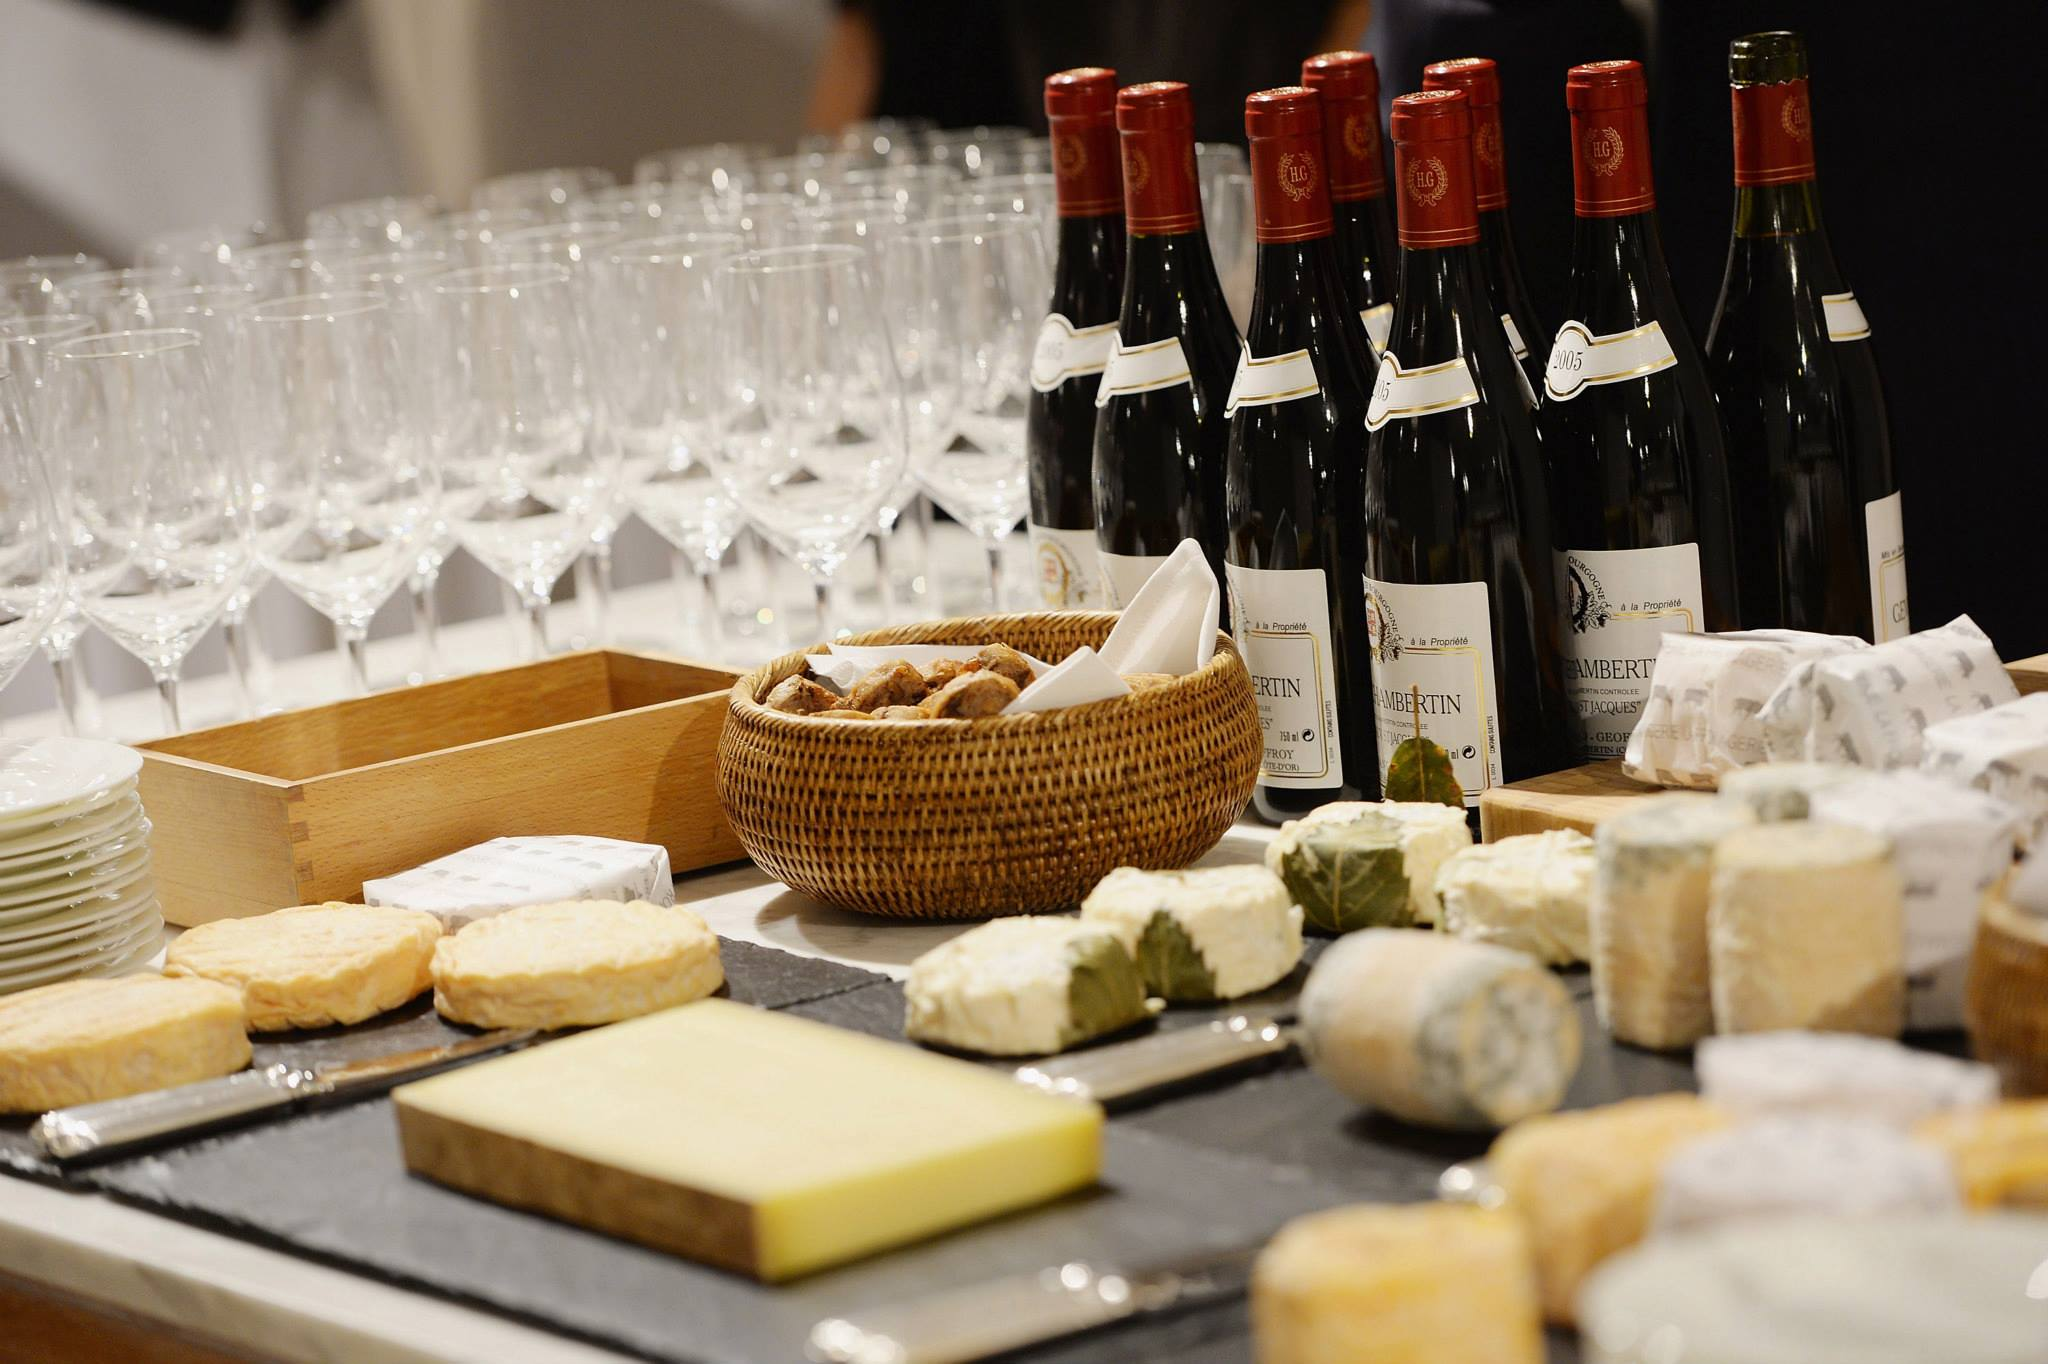 A-superb-Cheese-and-wine-offering-at-the-Samsung-event-in-store.jpg